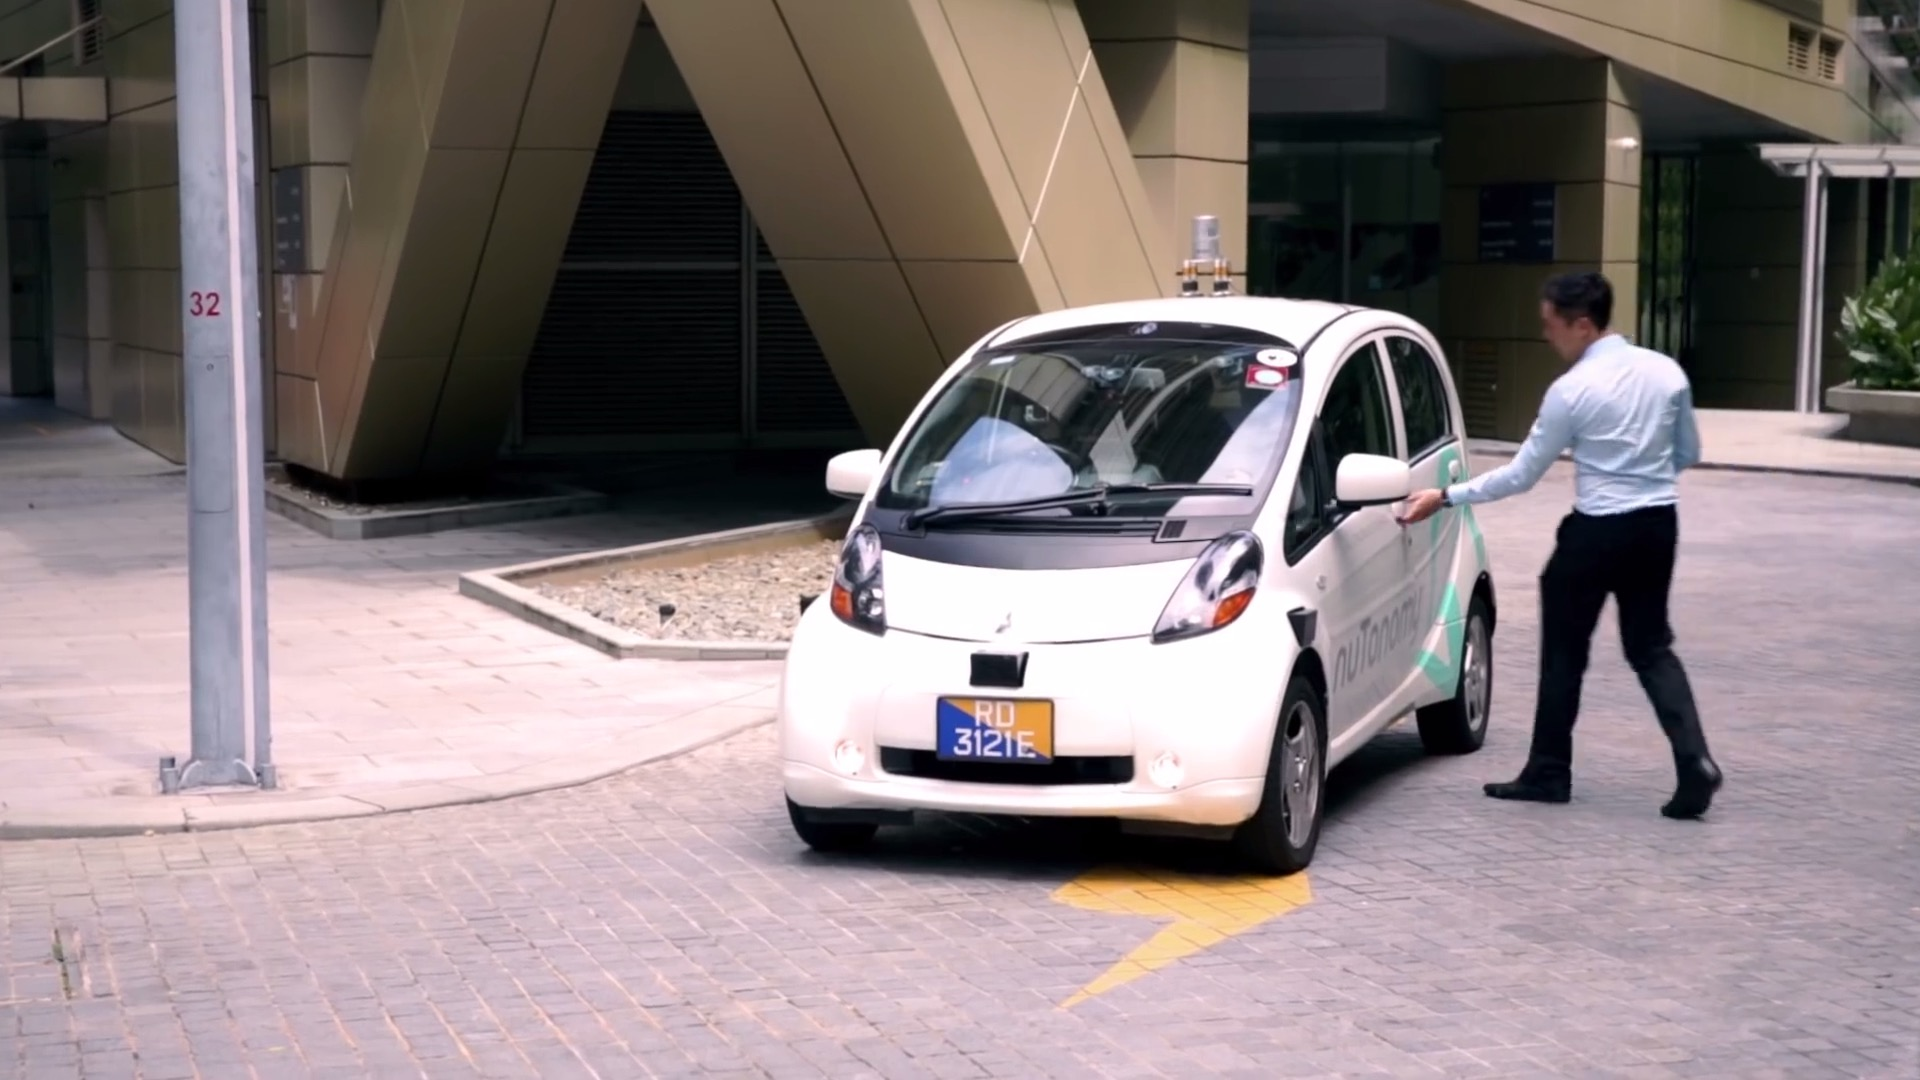 First Operational Self-Driving Taxi Goes Live in Singapore, nuTonomy ...